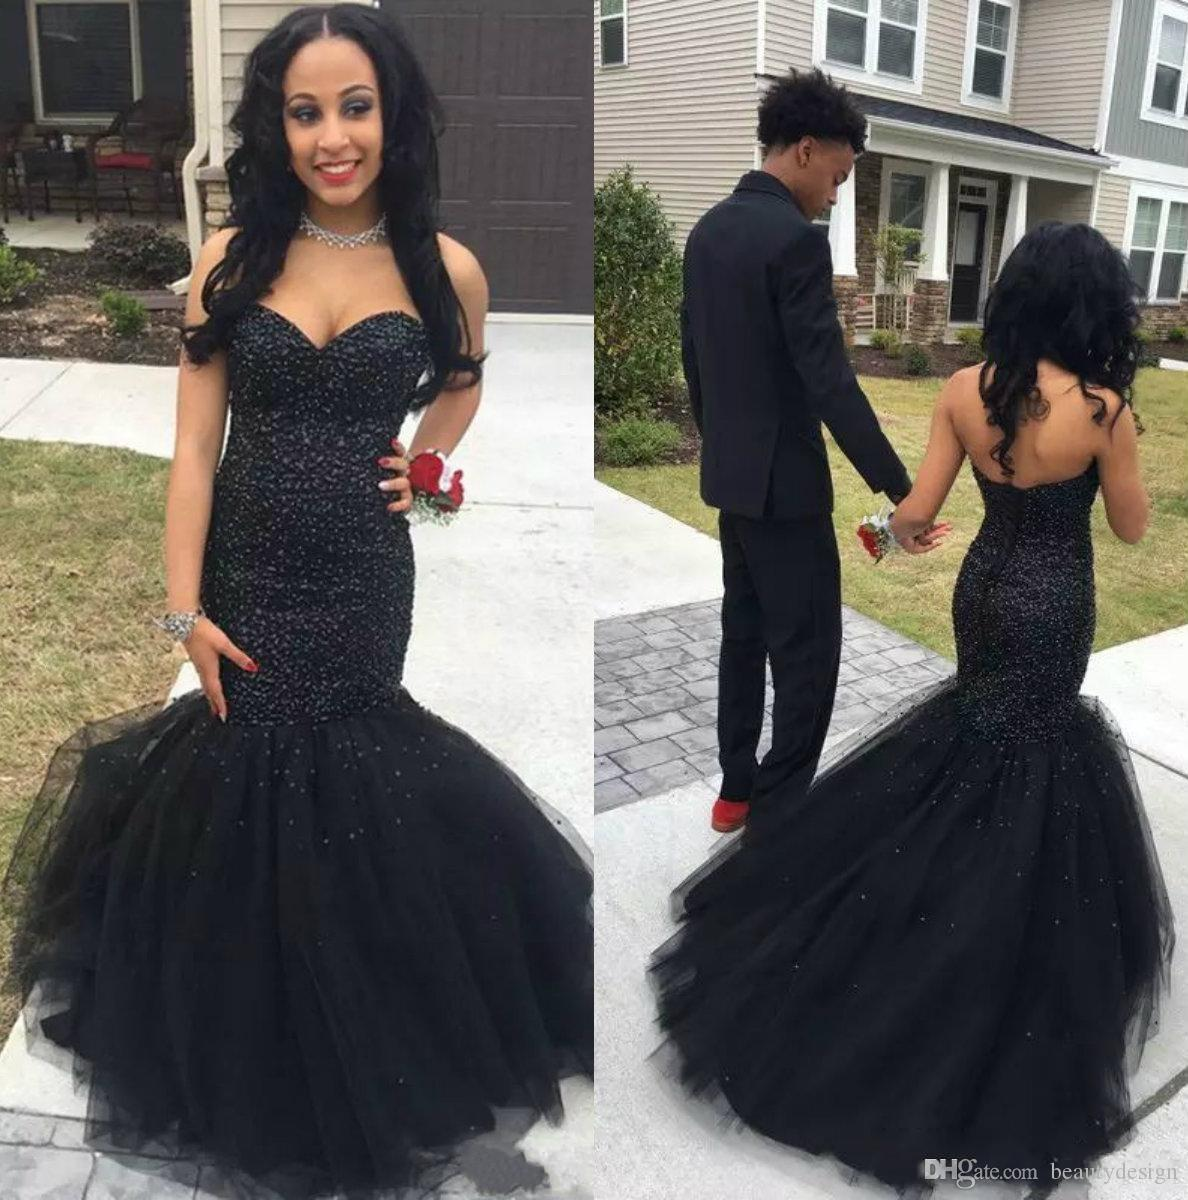 47493c4e98643 Black Girl African Mermaid Prom Dresses 2018 Long Major Beading Formal  Dress Evening Wear Plus Size Party Gowns Robes De Soirée Sexy Long Prom  Dresses Short ...